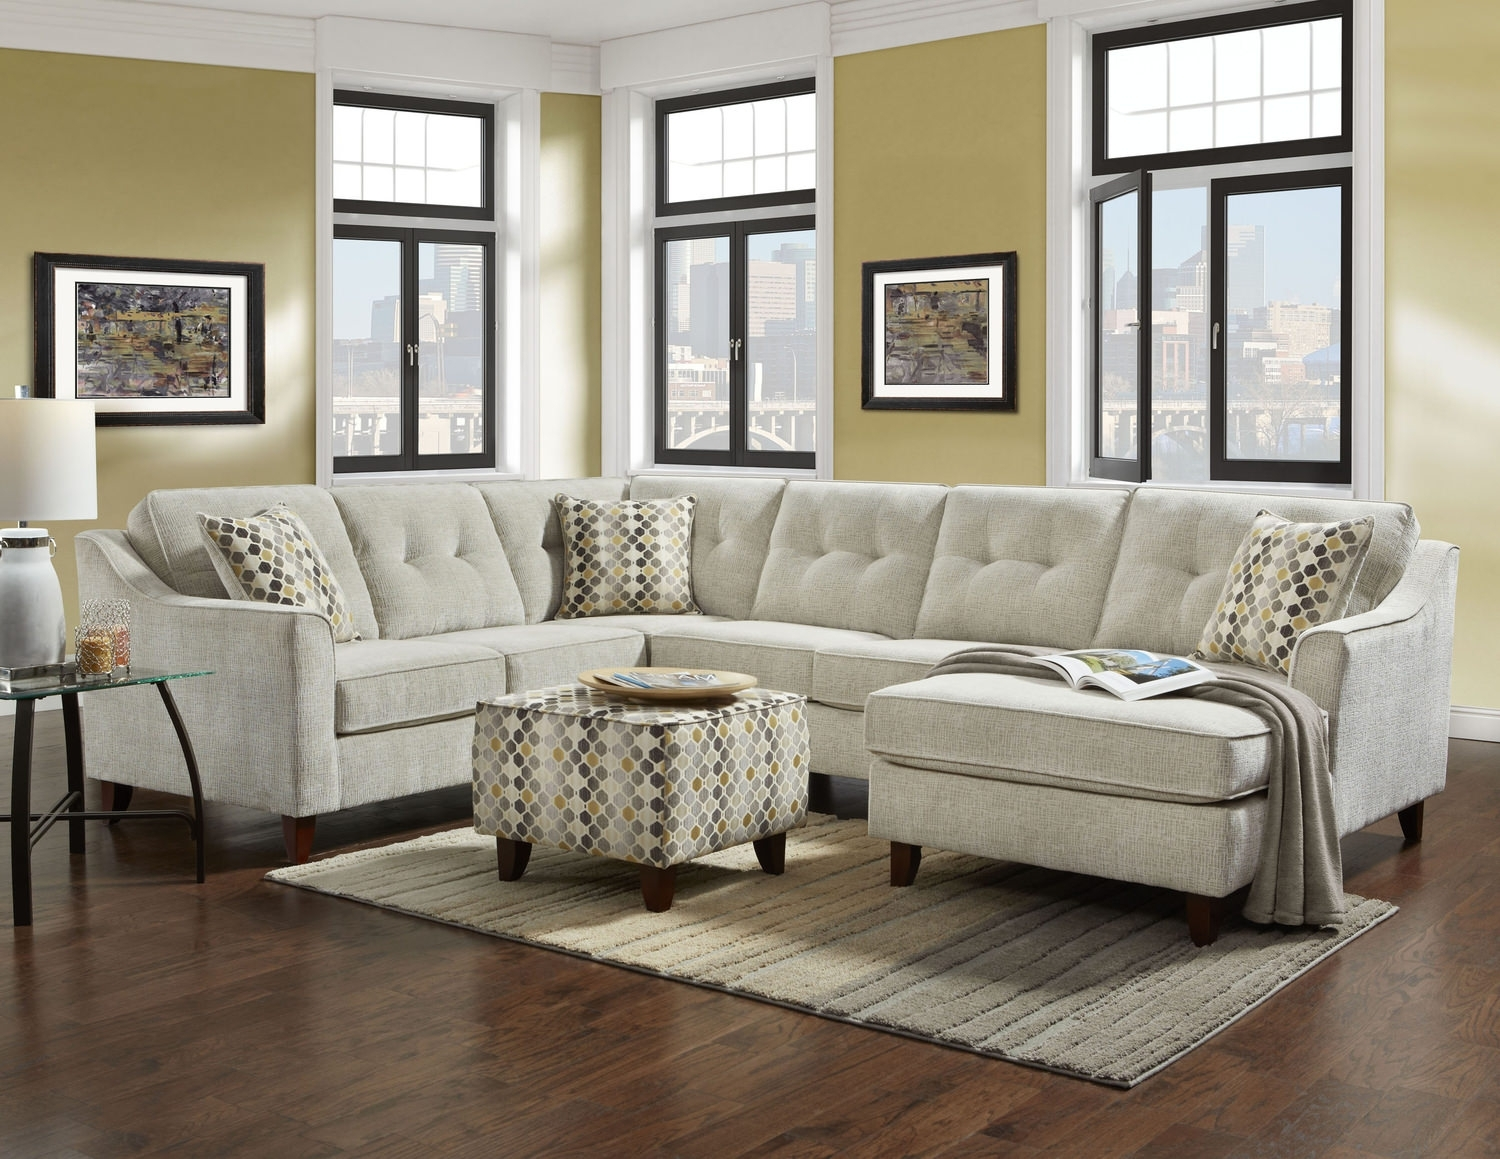 3 Piece Sectional | Gorbuhi with Adeline 3 Piece Sectionals (Image 1 of 30)